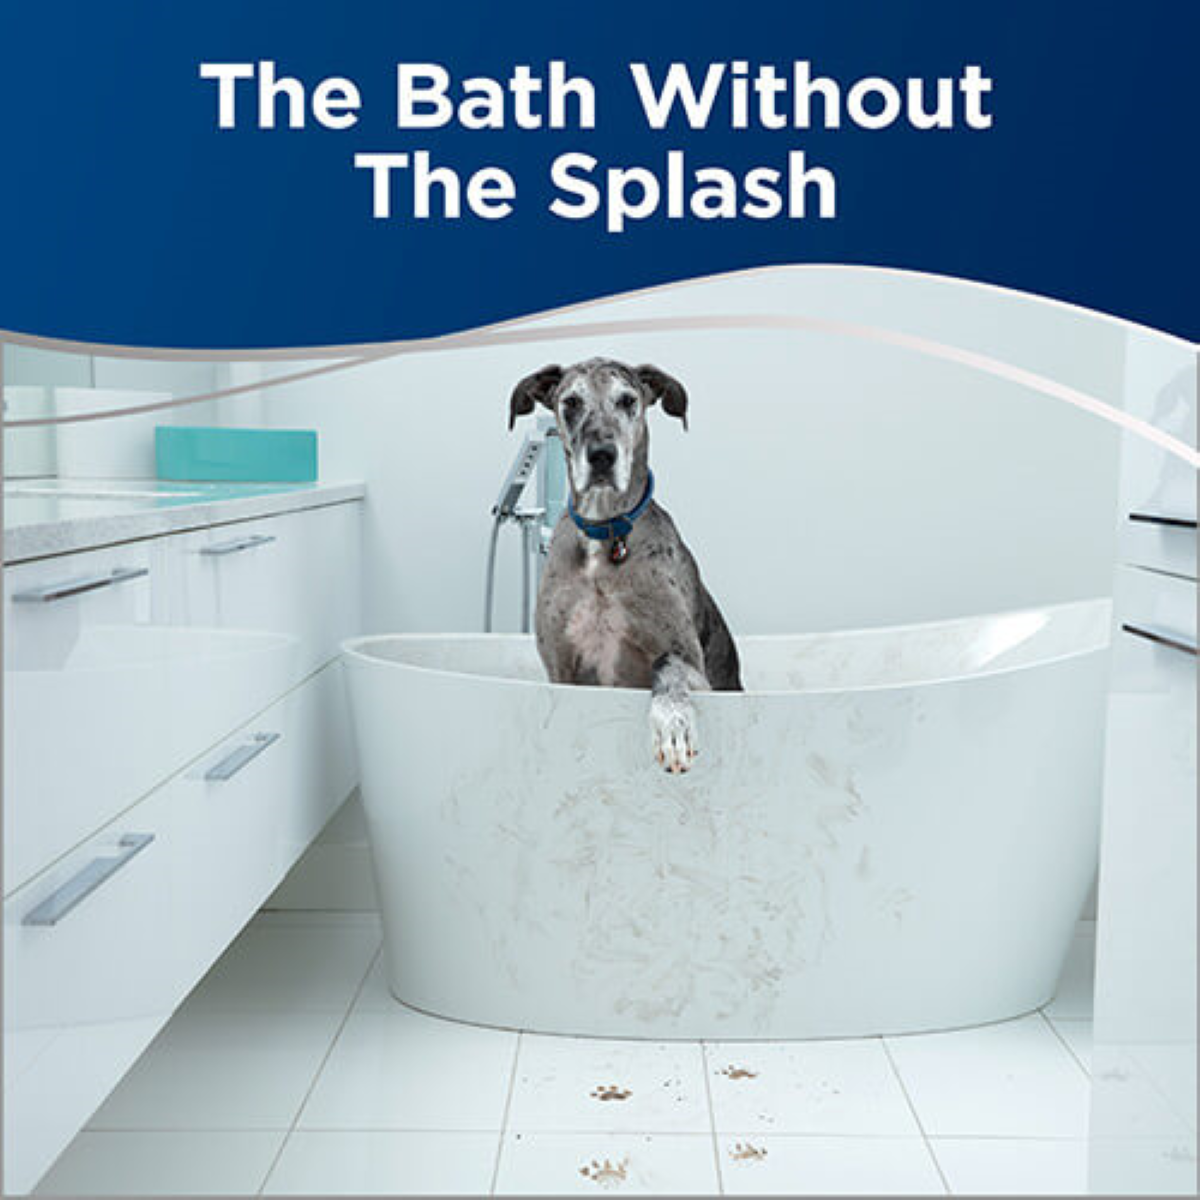 Bissell Barkbath - Uses a Minimal Amount of Water